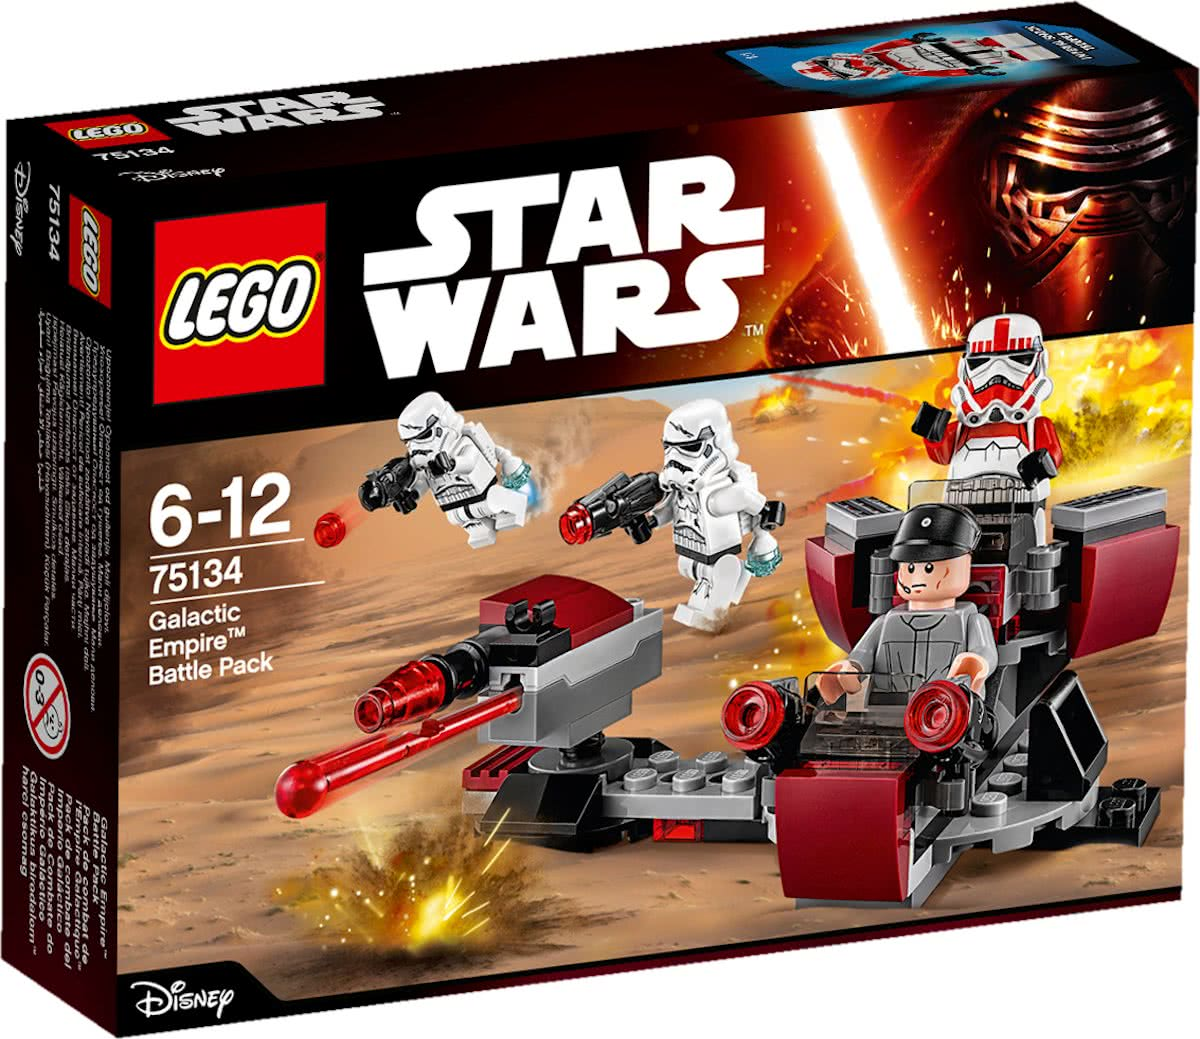 LEGO Star Wars Galactic Empire Battle Pack - 75134